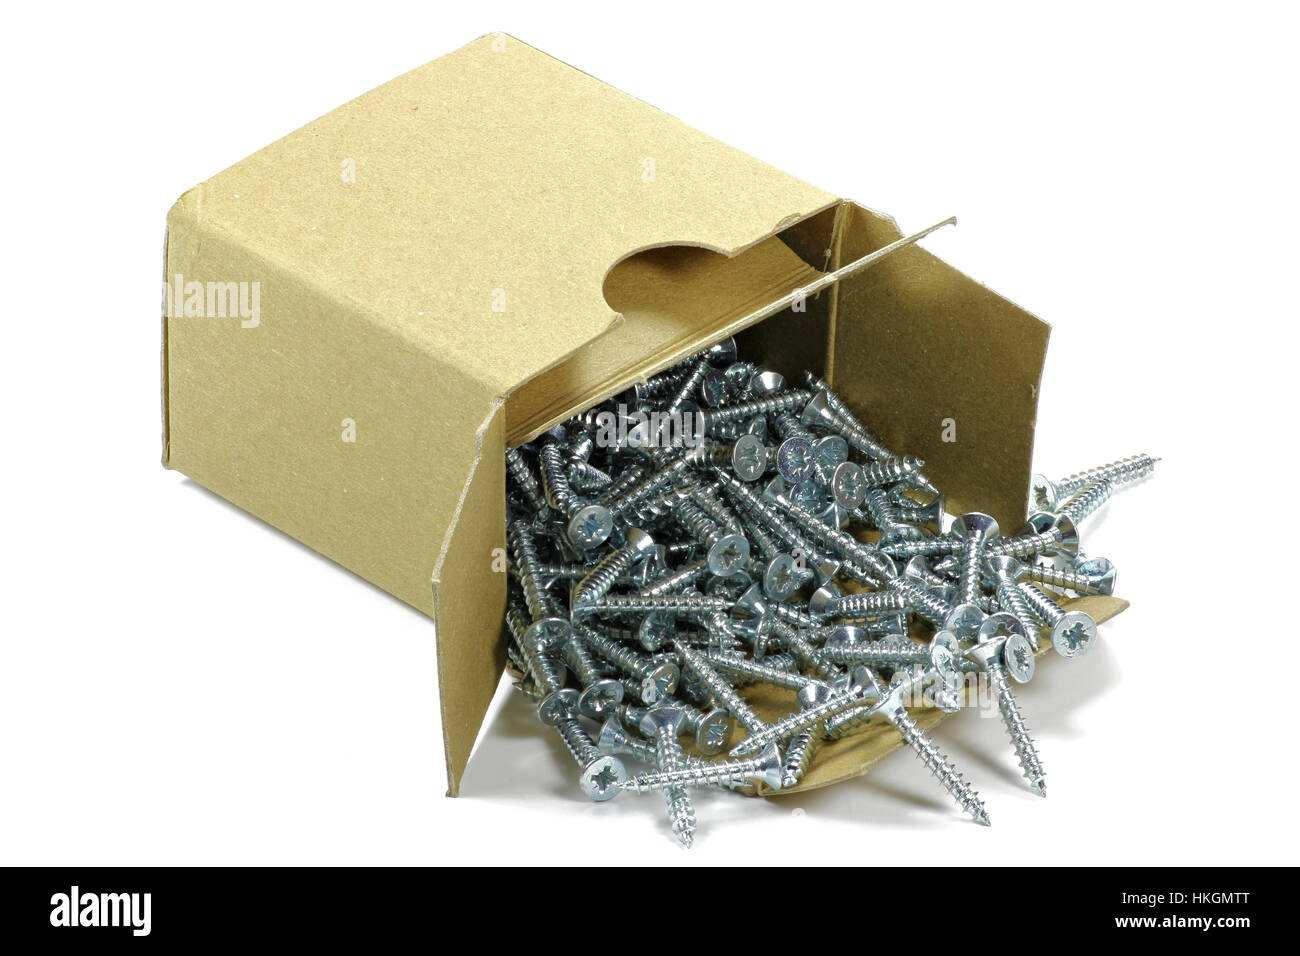 universal screws in a cardboard container isolated on white background - Stock Image